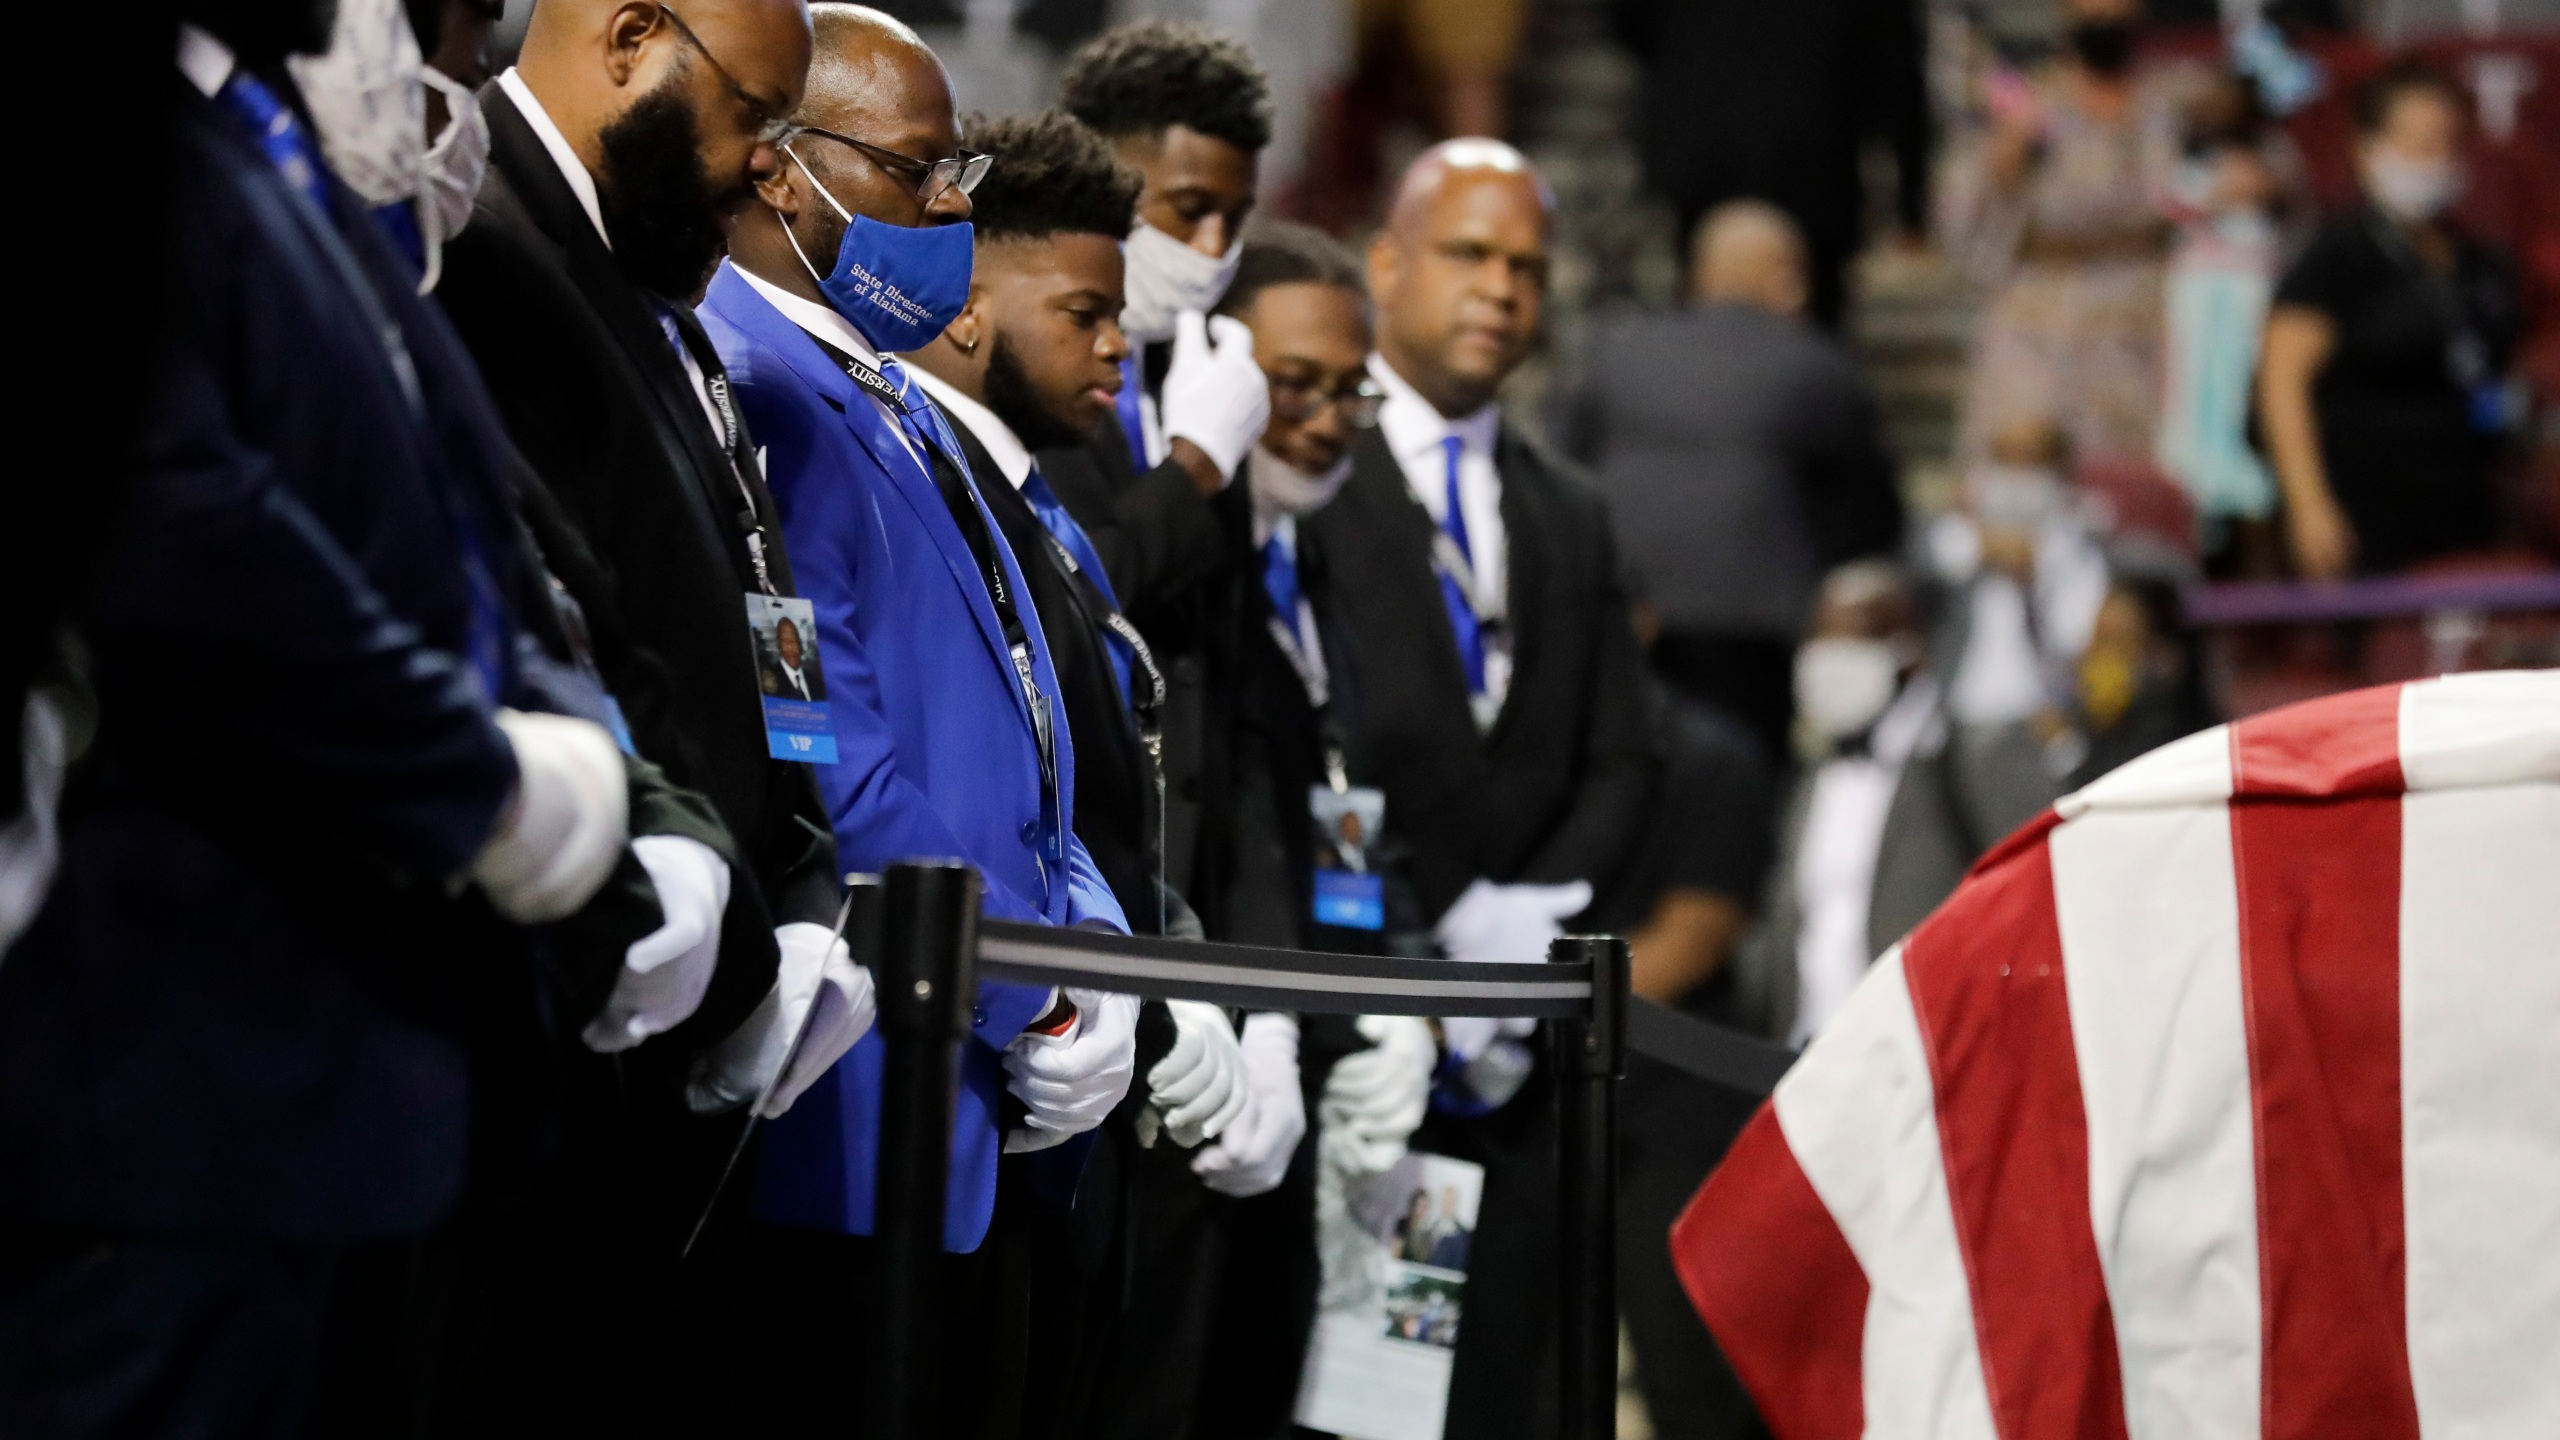 """Fraternity members sing in front of the casket of the late Rep. John Lewis, D-Ga., during a service celebrating """"The Boy from Troy"""" at Troy University on July 25, 2020, in Troy, Ala. (AP Photo/Brynn Anderson)"""